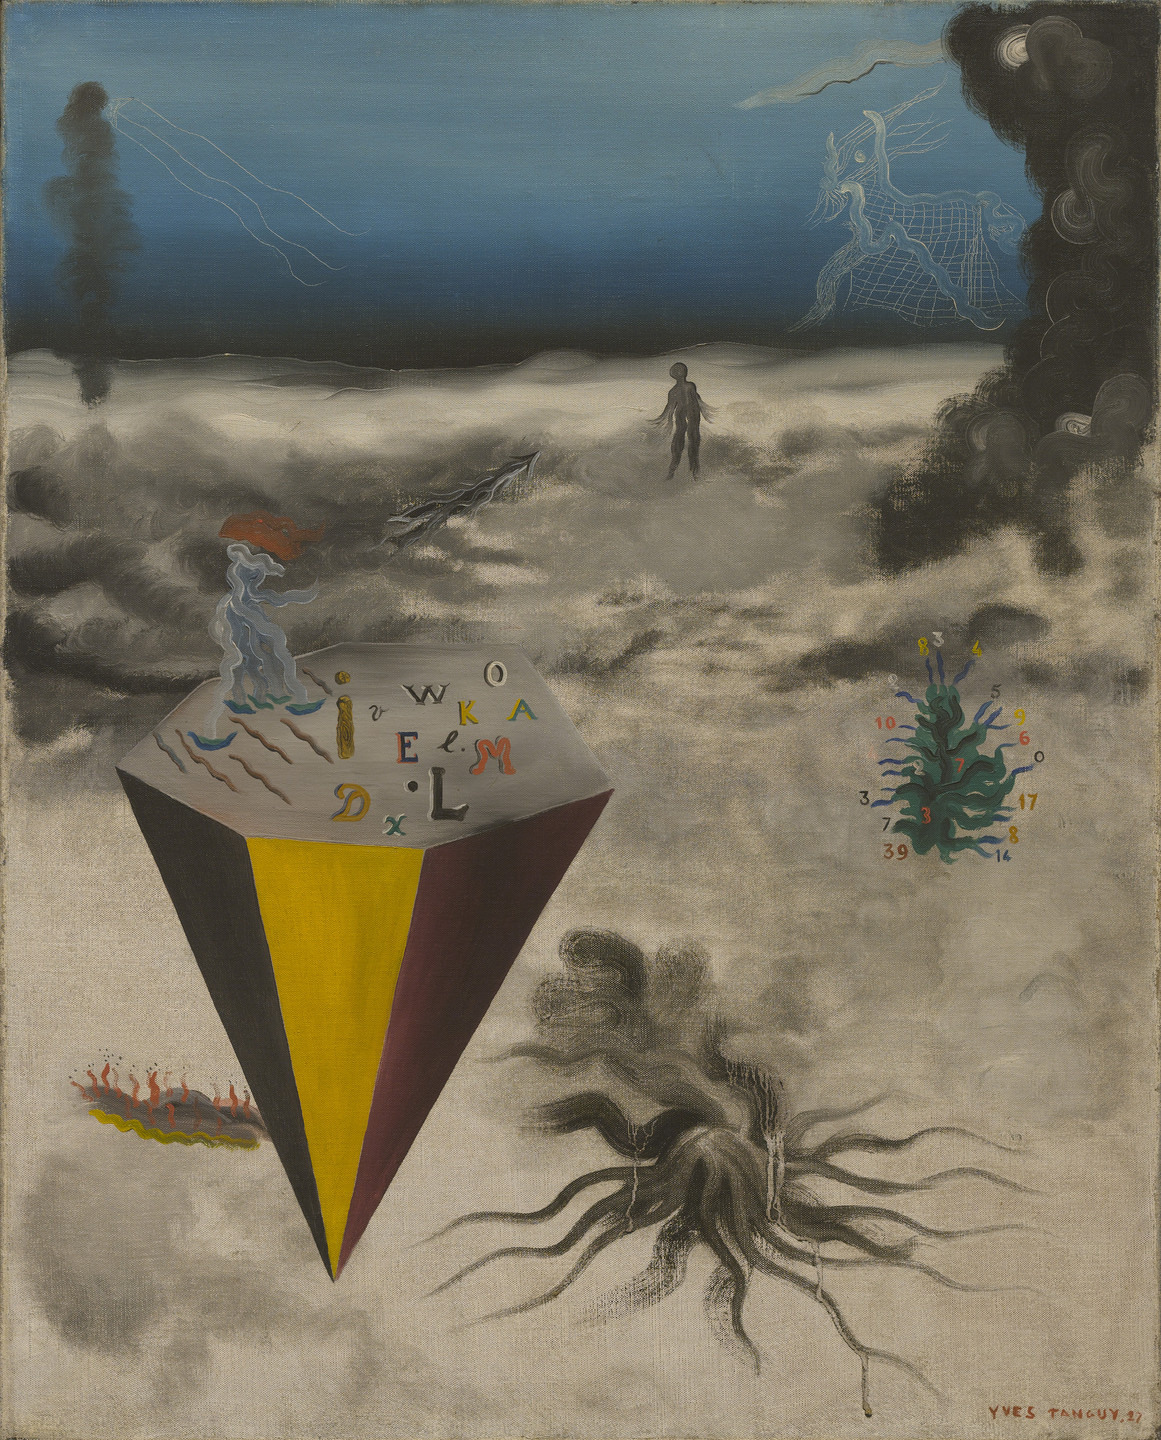 Yves Tanguy. He Did What He Wanted. 1927